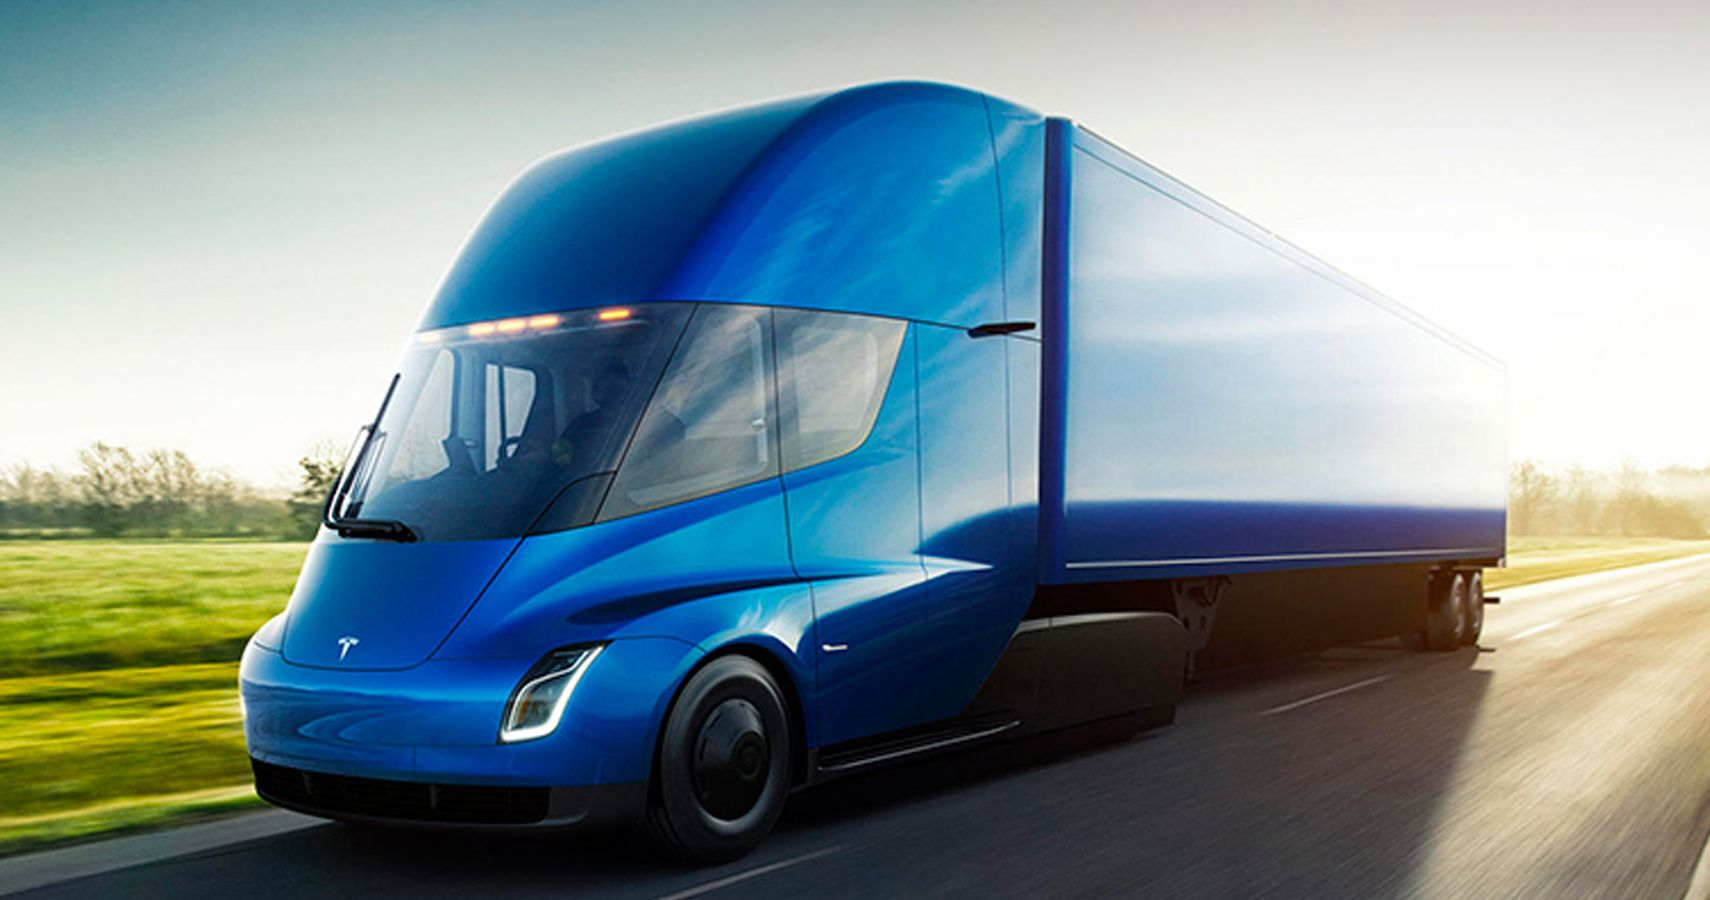 That's What They Like: Pepsi Cola To Receive 15 Tesla Semi Trucks By The End Of 2021